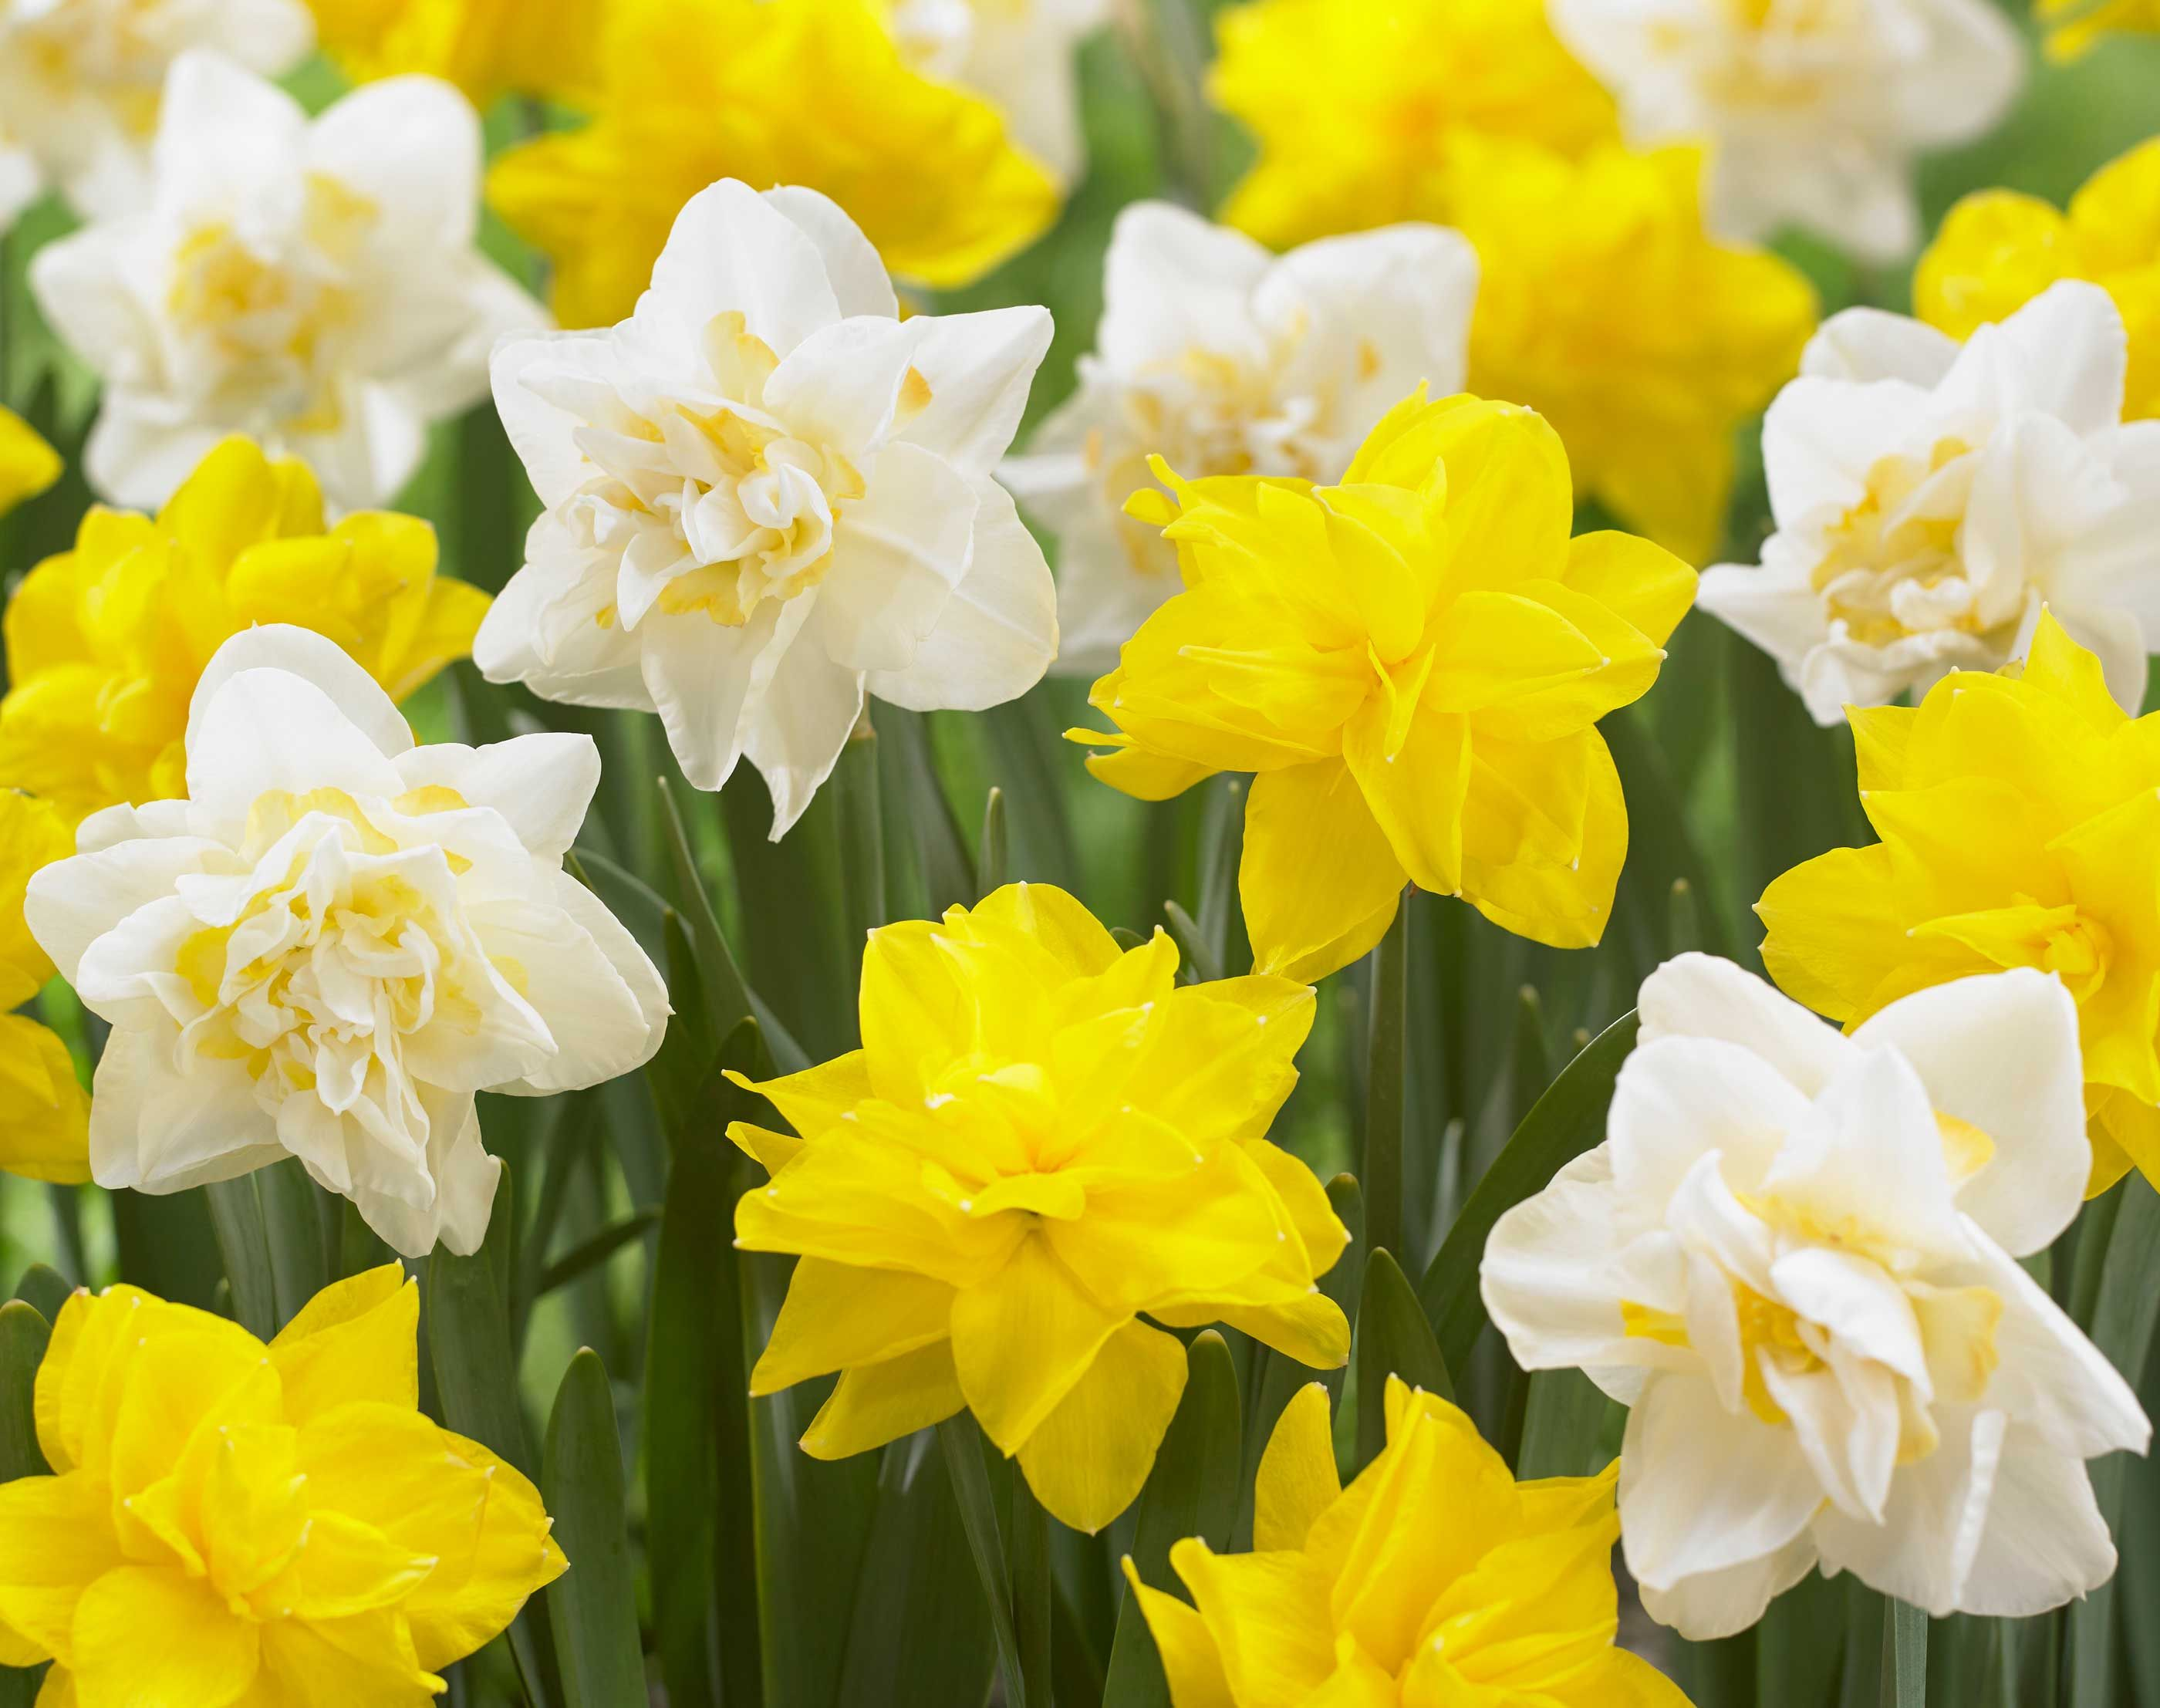 Discover The Beauty Of Double Daffodils Rose Like Flowers Daffodils Types Of Flowers